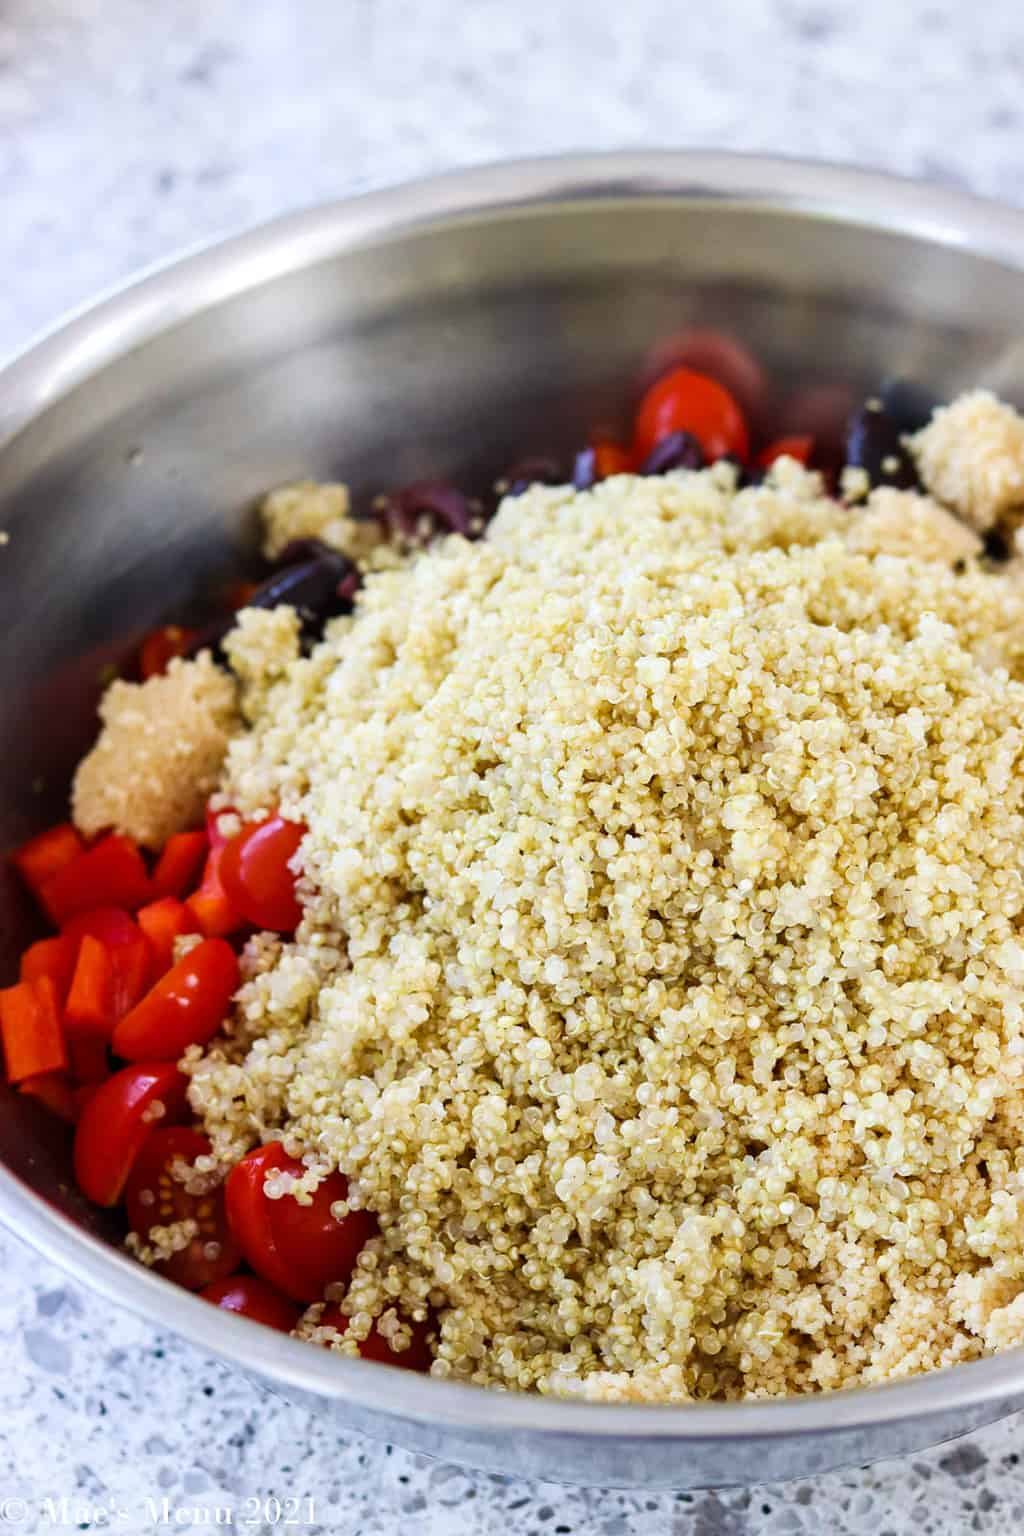 A large mixing bowl with veggies and a big pile of quinoa on top